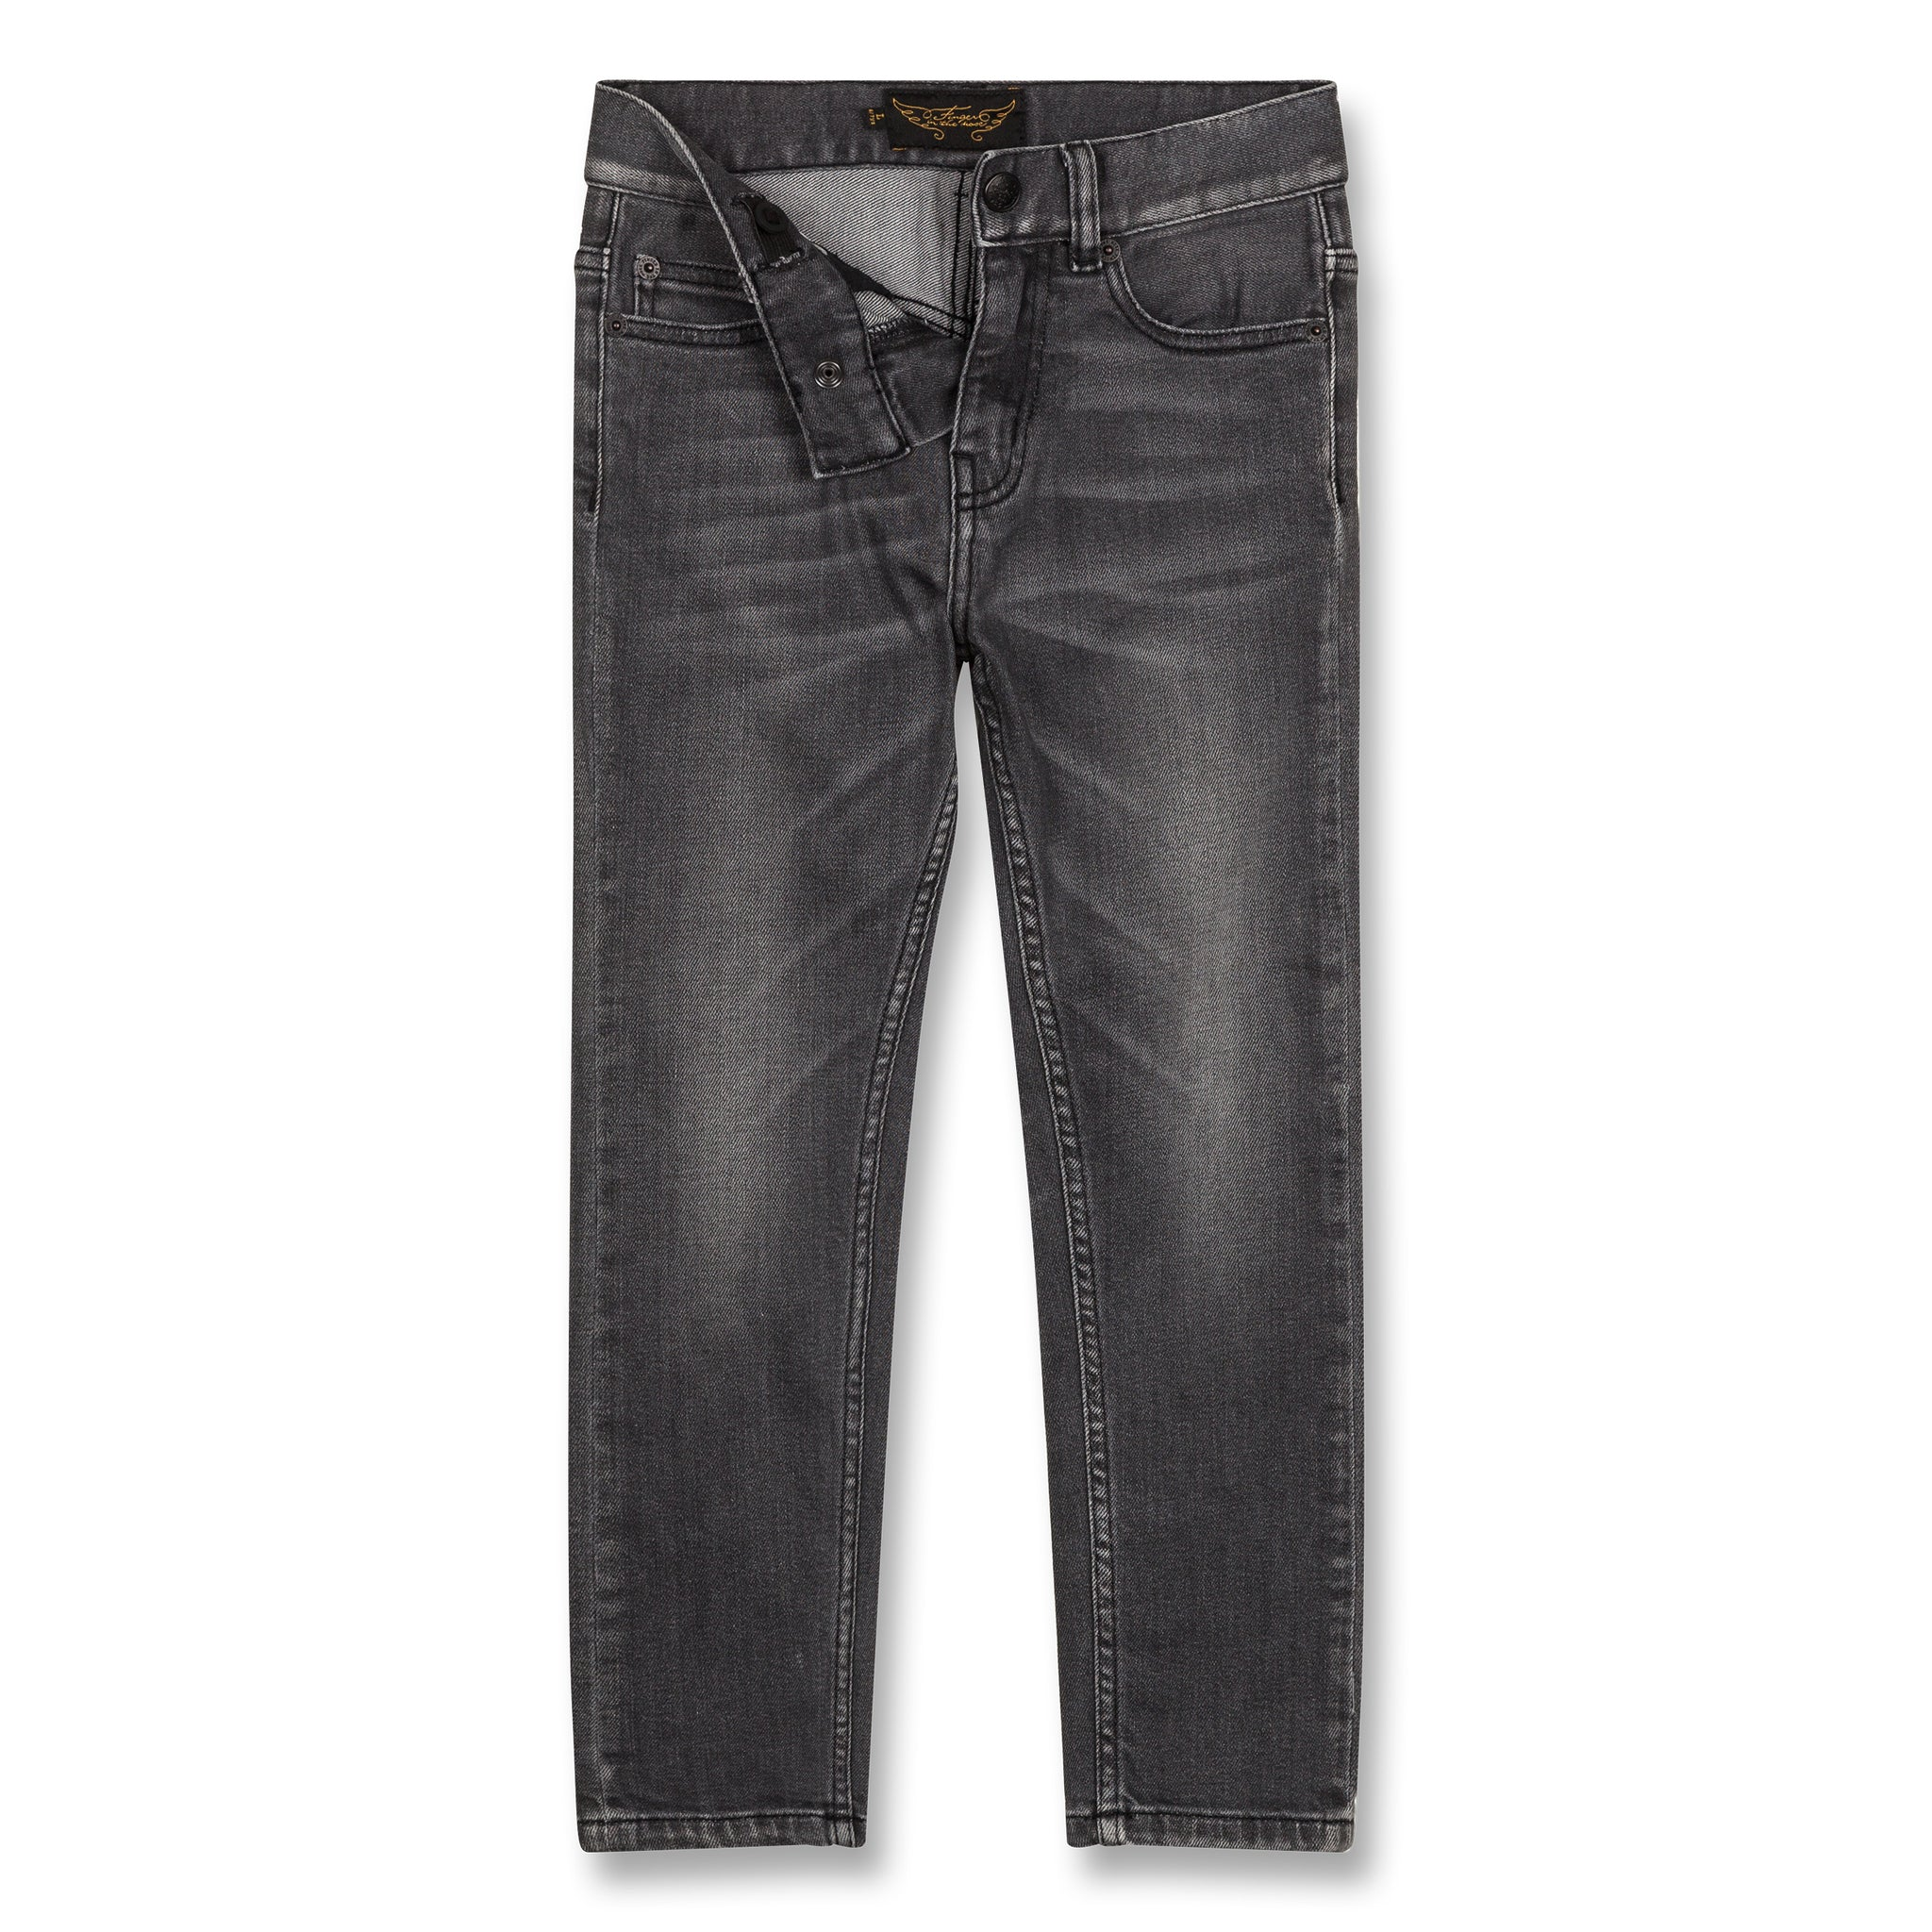 NEW NORTON Grey Denim - 5 Pocket Straight Fit Jeans 2